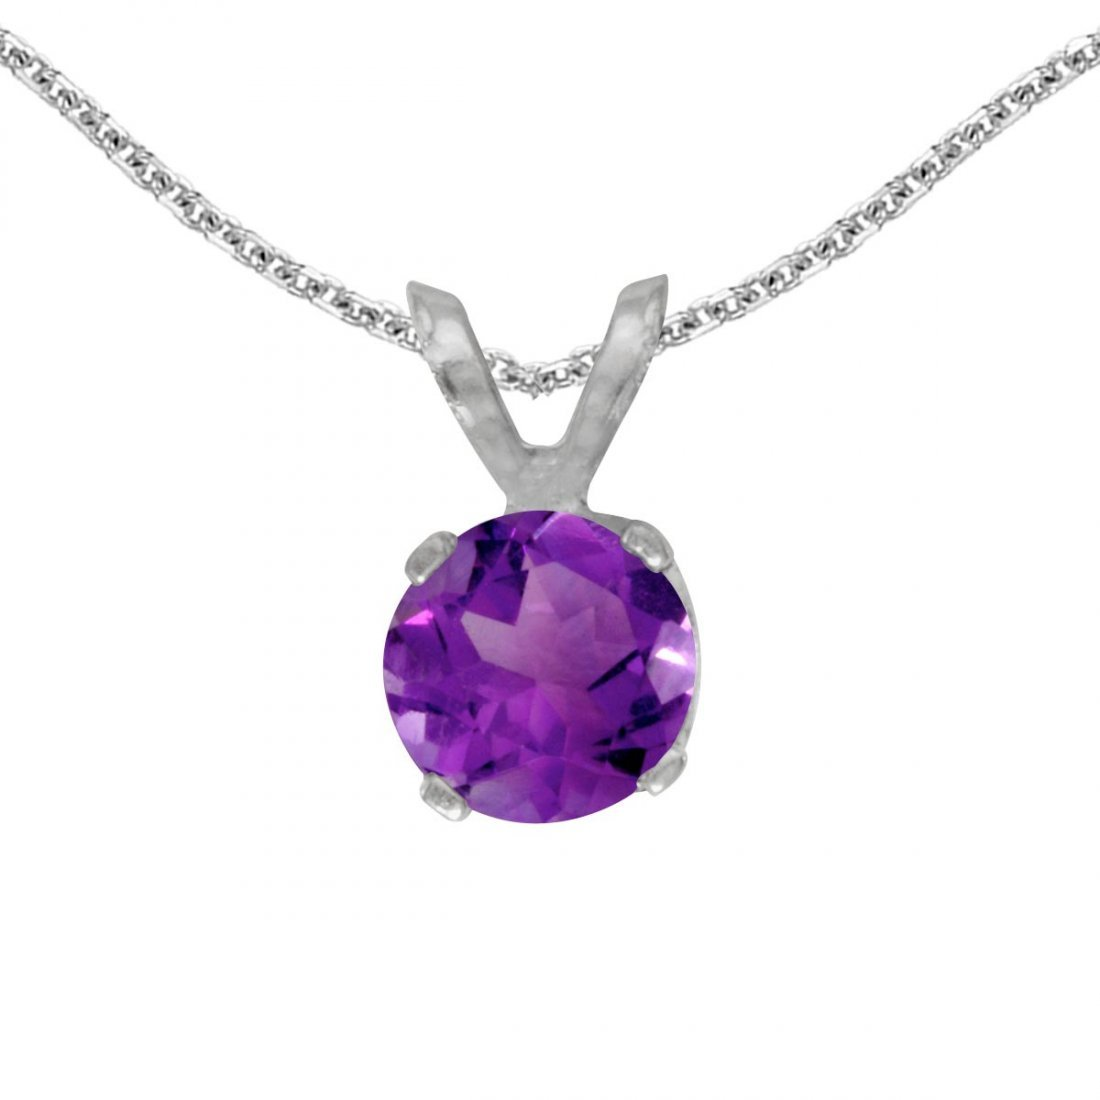 Certified 14k White Gold Round Amethyst Pendant